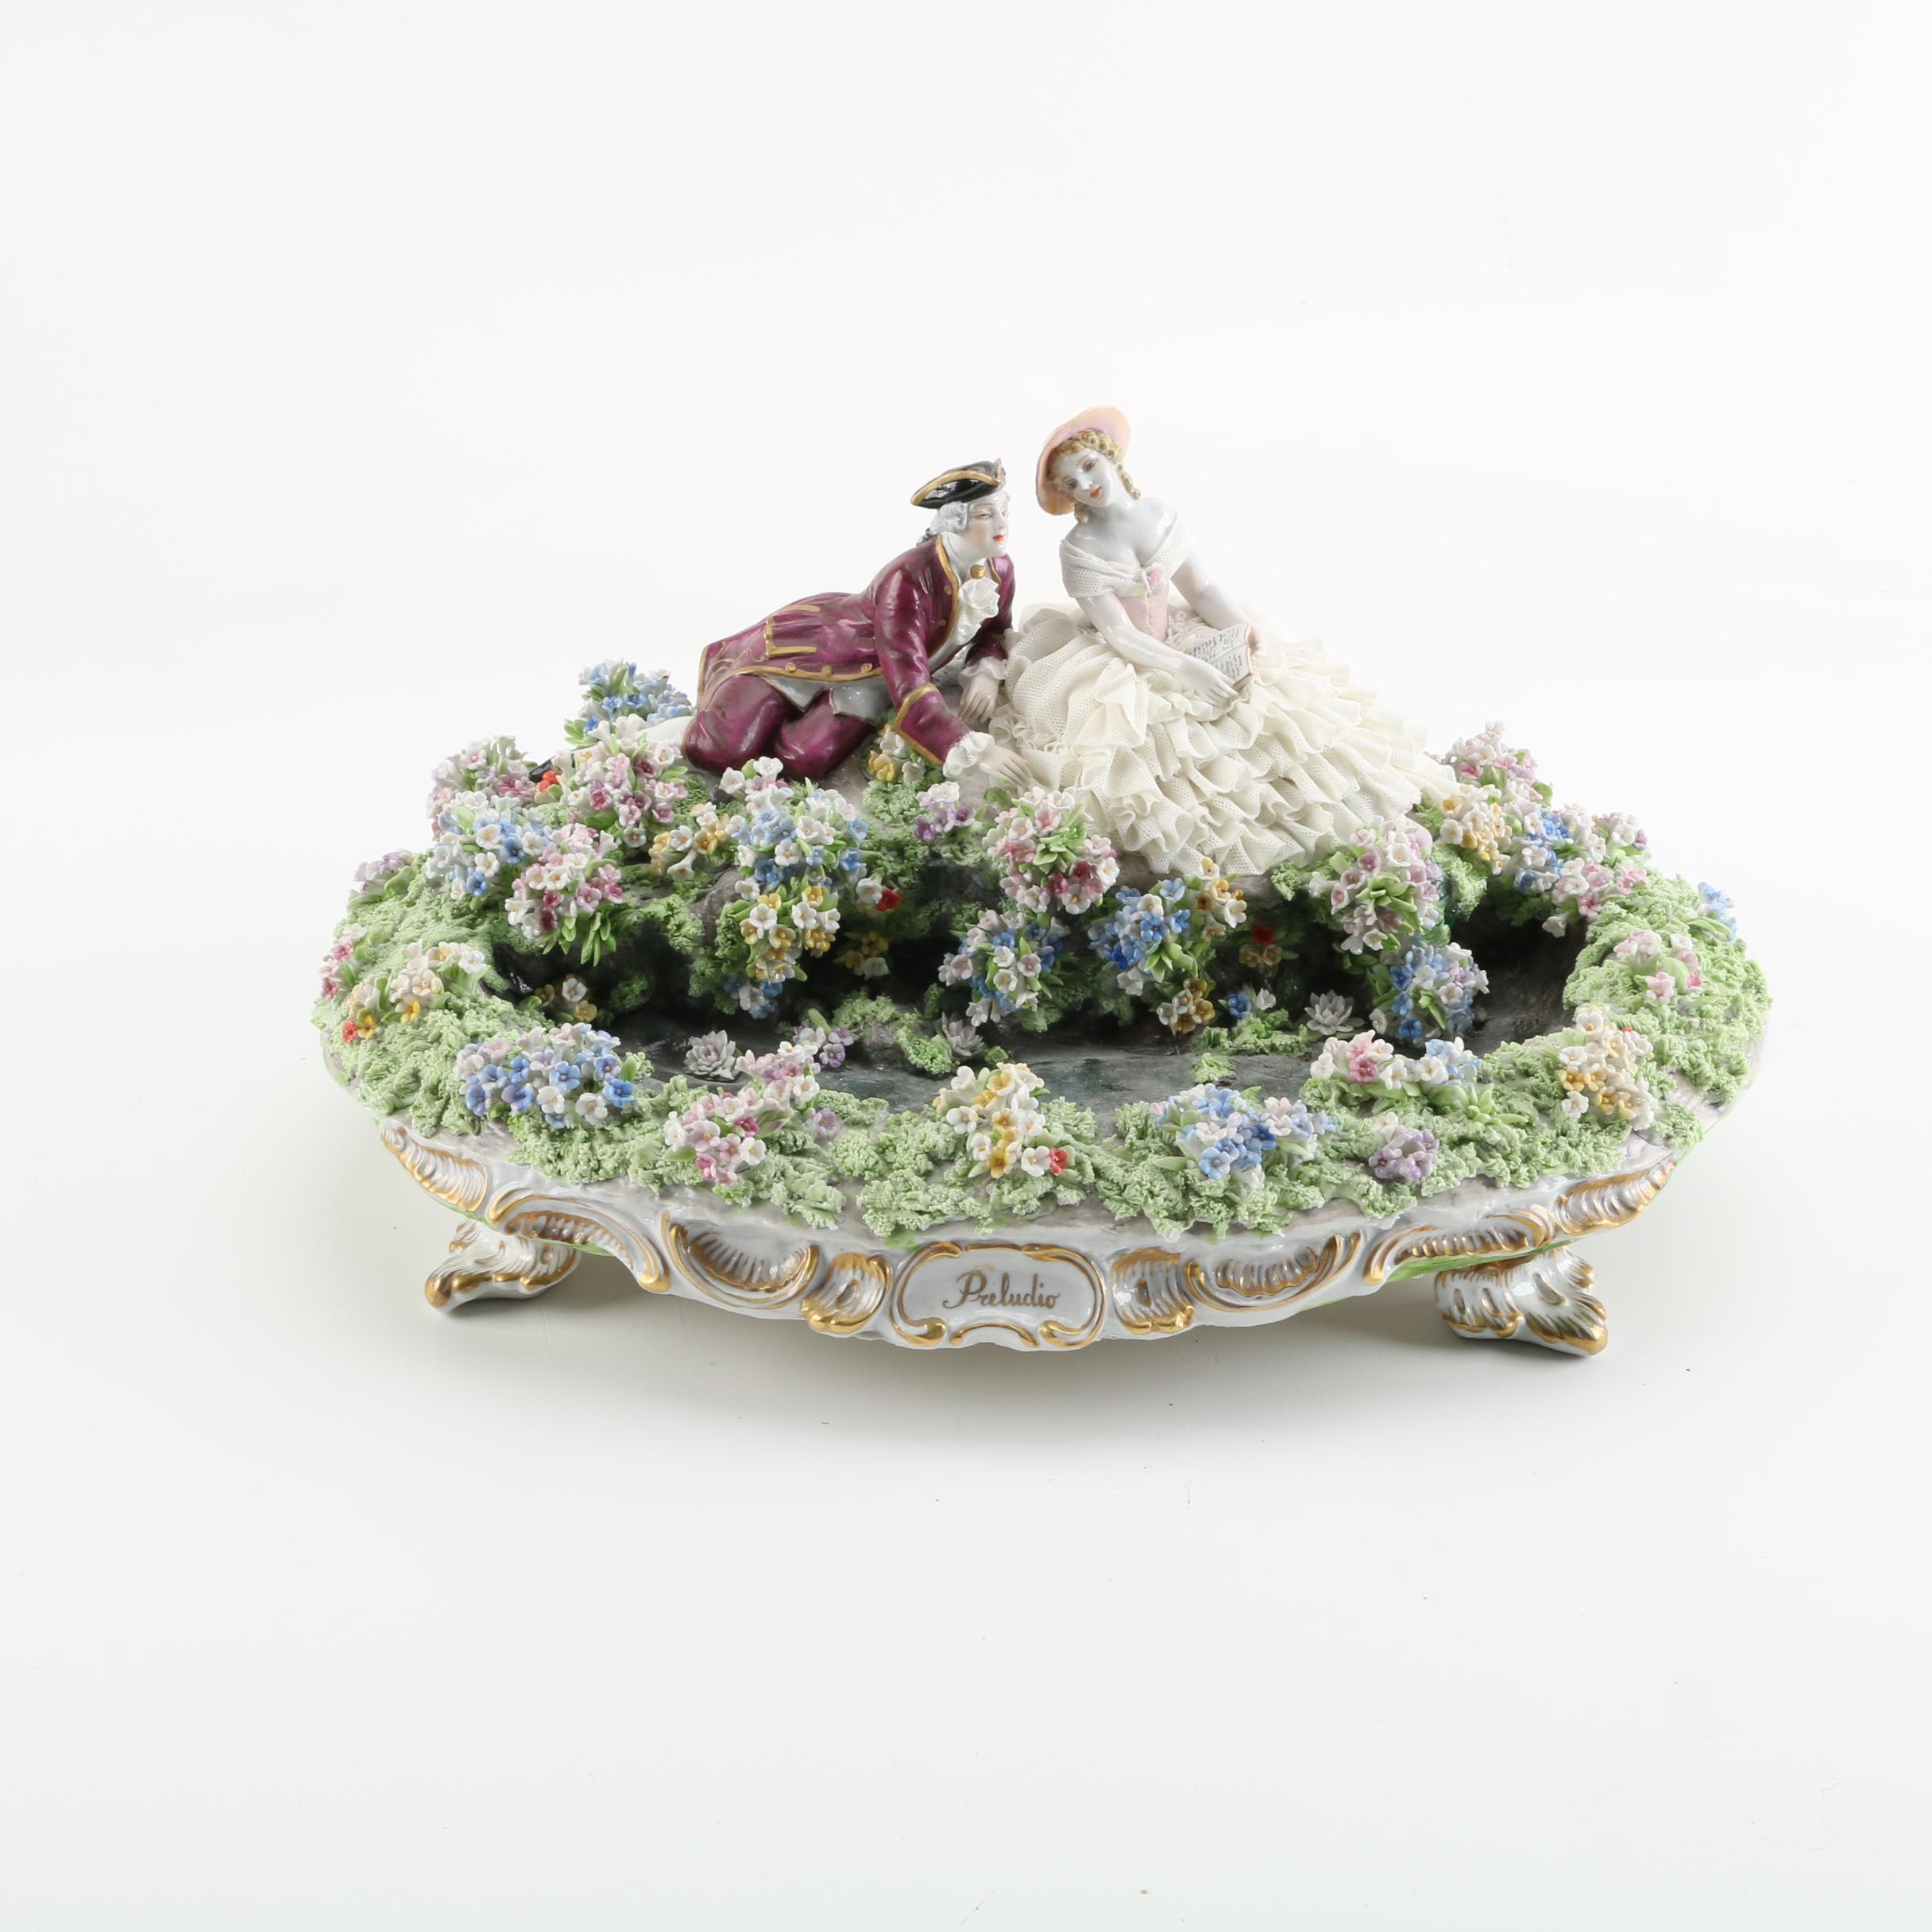 "18th Century Style ""Preludio"" Figurine of Man and Woman with Flower Bed"